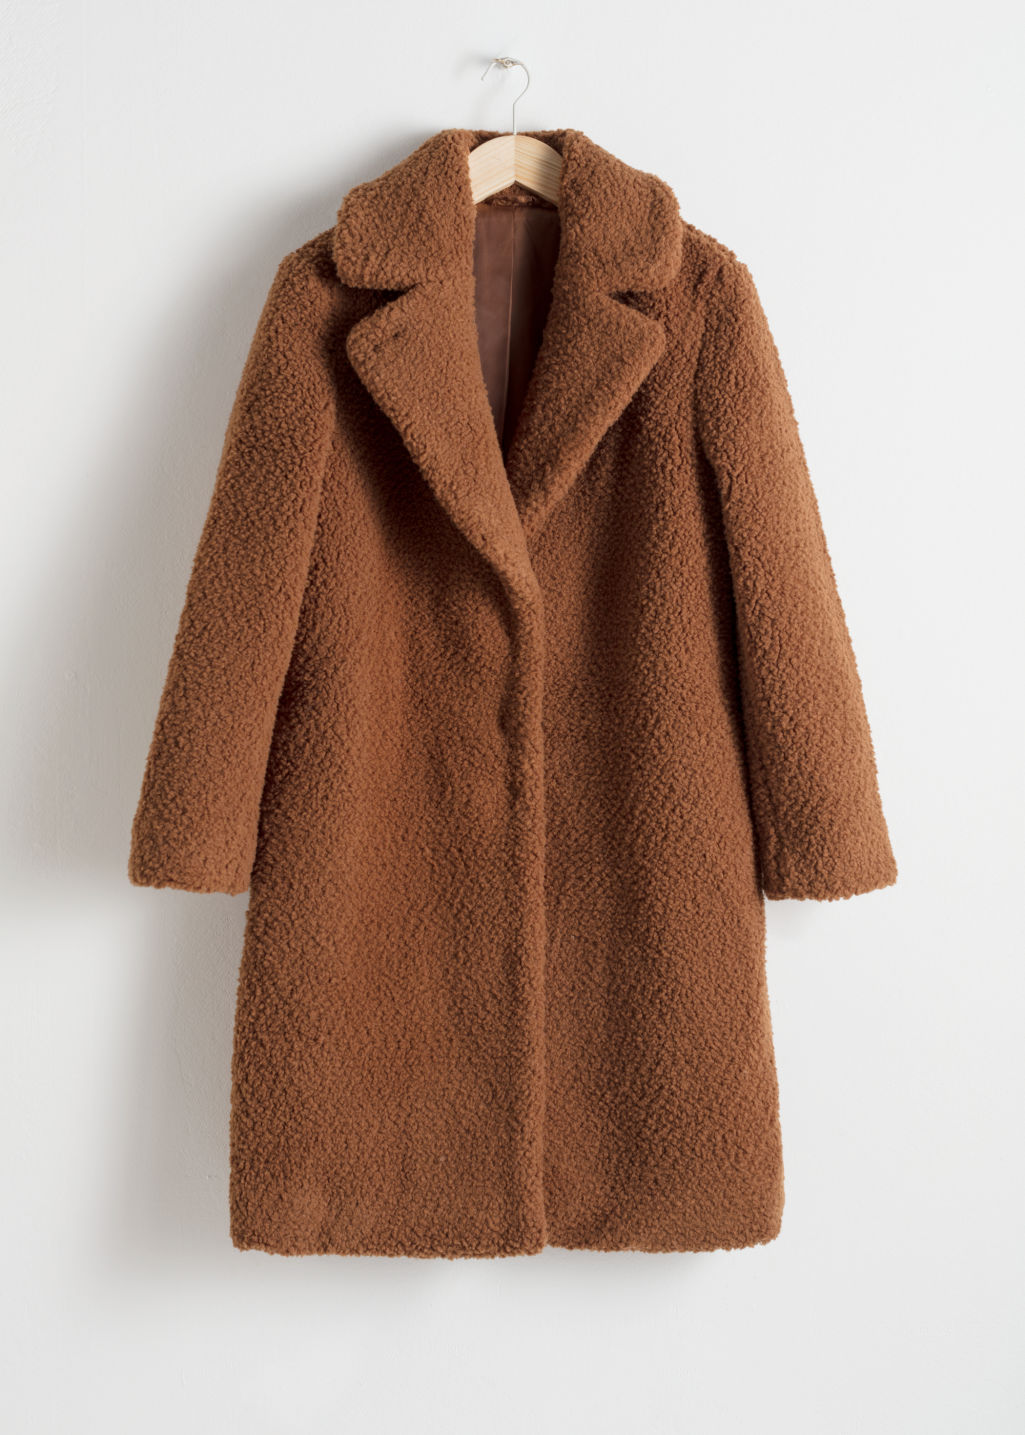 ad815cab Faux Shearling Teddy Coat - Camel - Fauxfur - & Other Stories